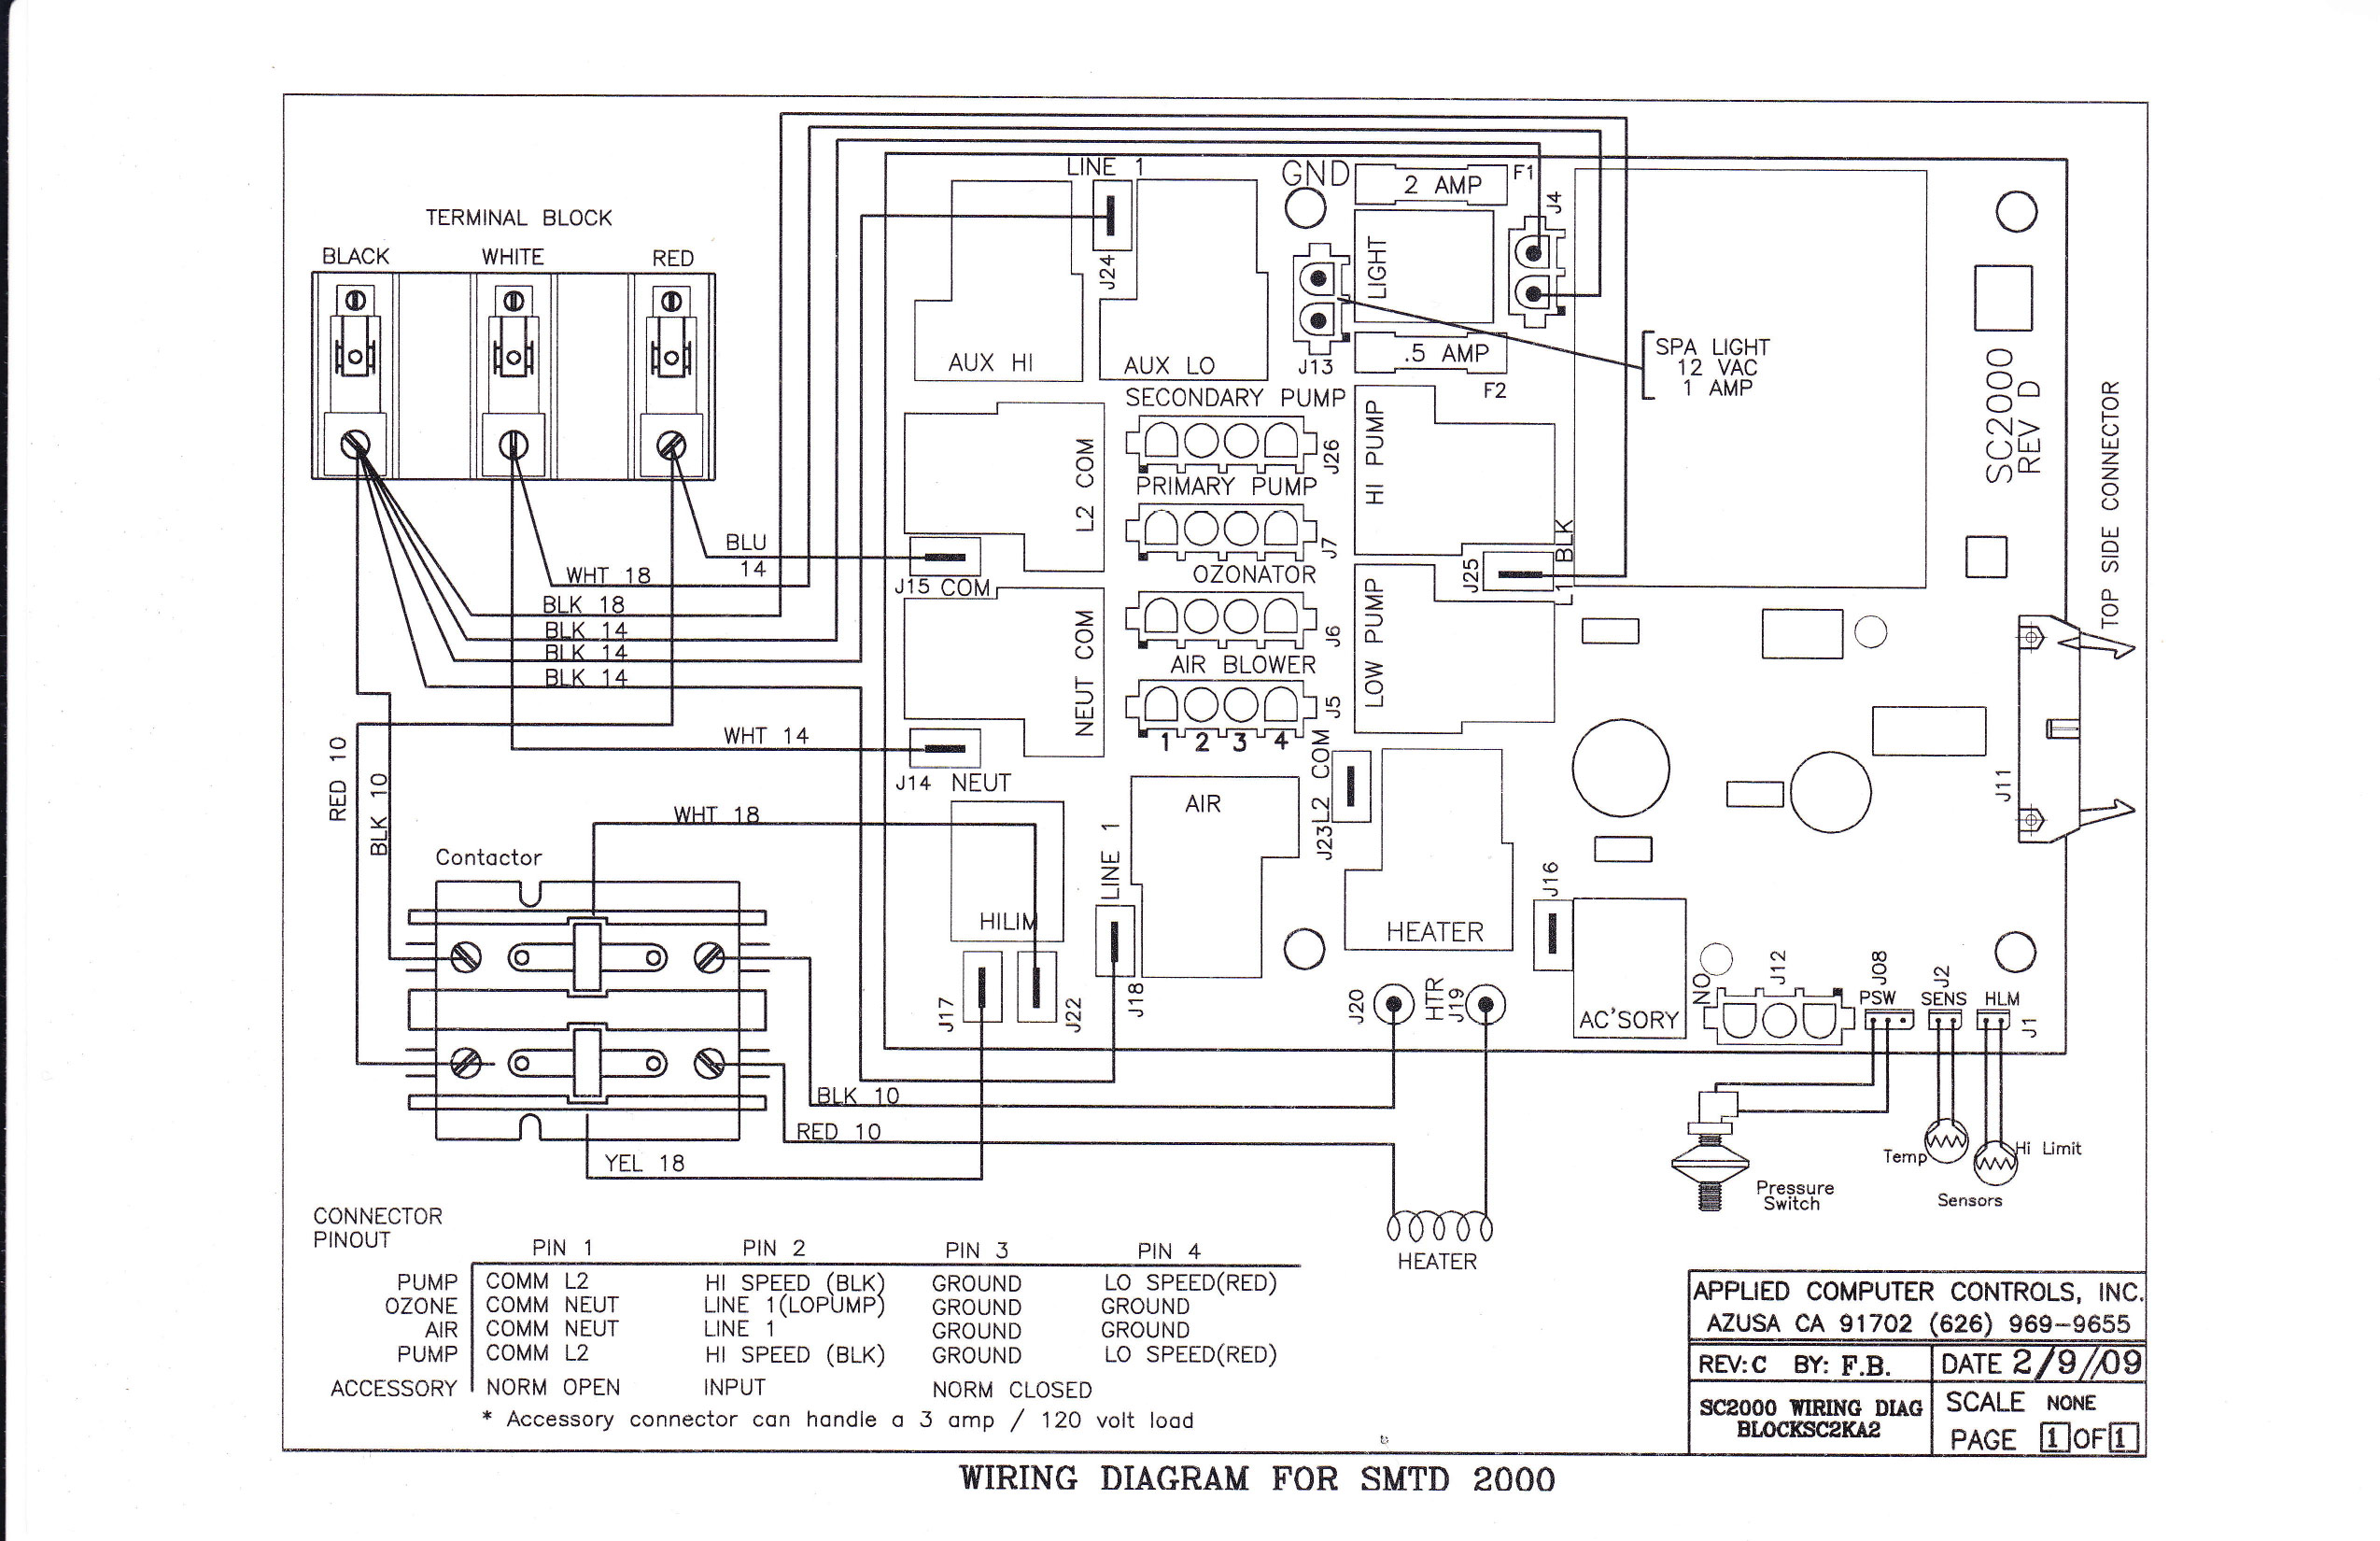 Suzuki Equator Engine Diagram Suzuki Esteem Engine Diagram